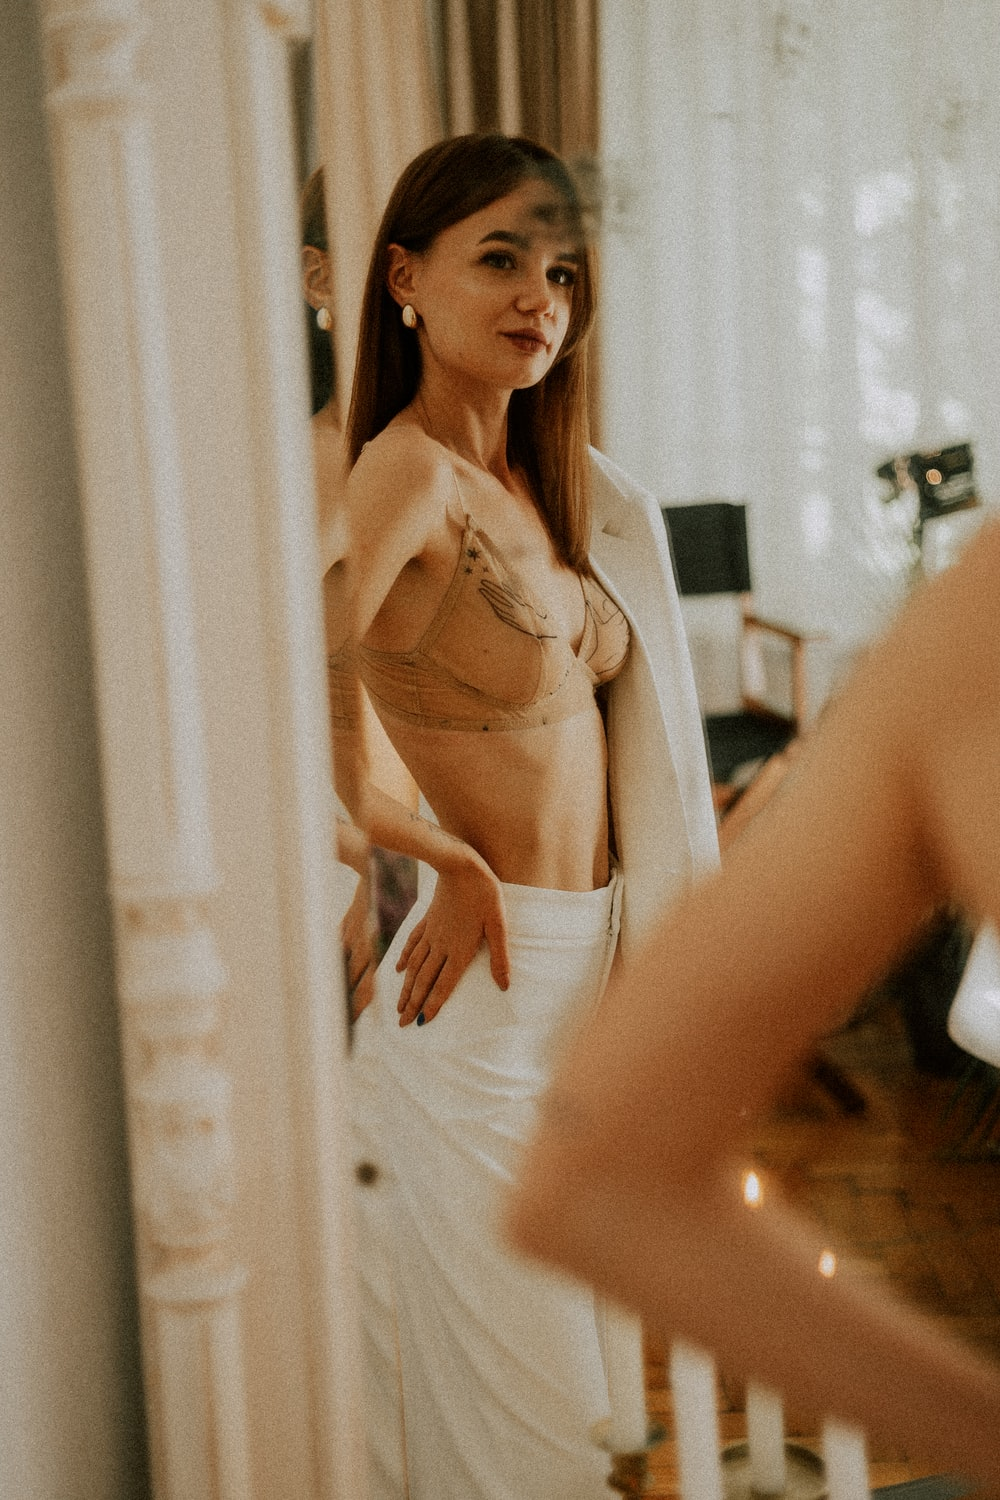 woman in white brassiere and panty